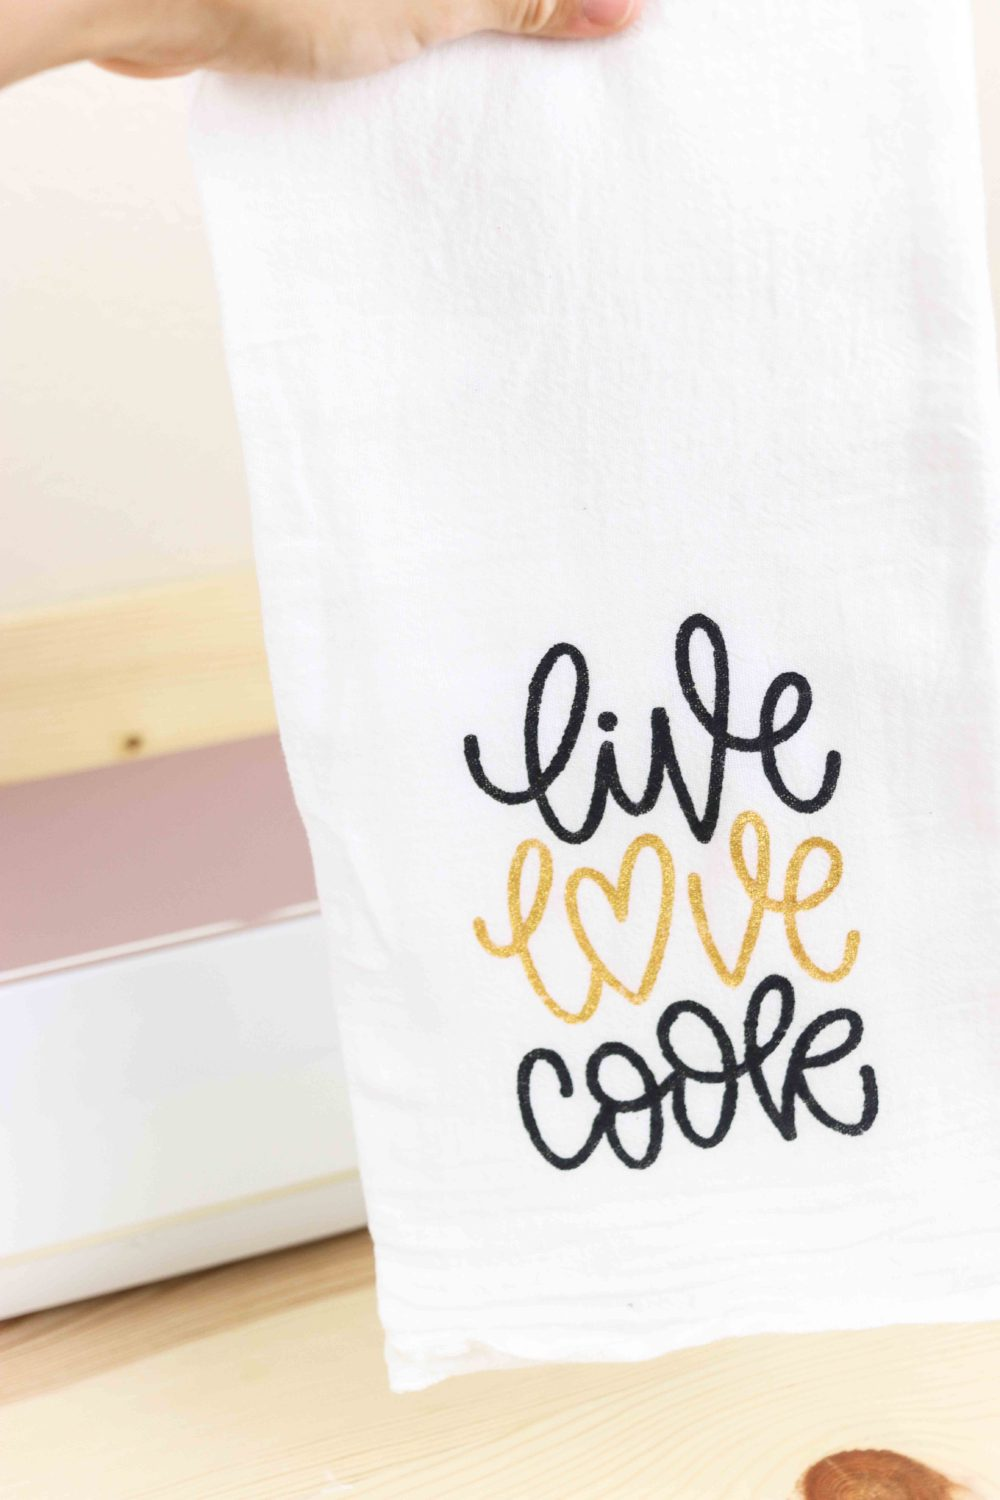 Kitchen towel made with the freezer paper stencil method.